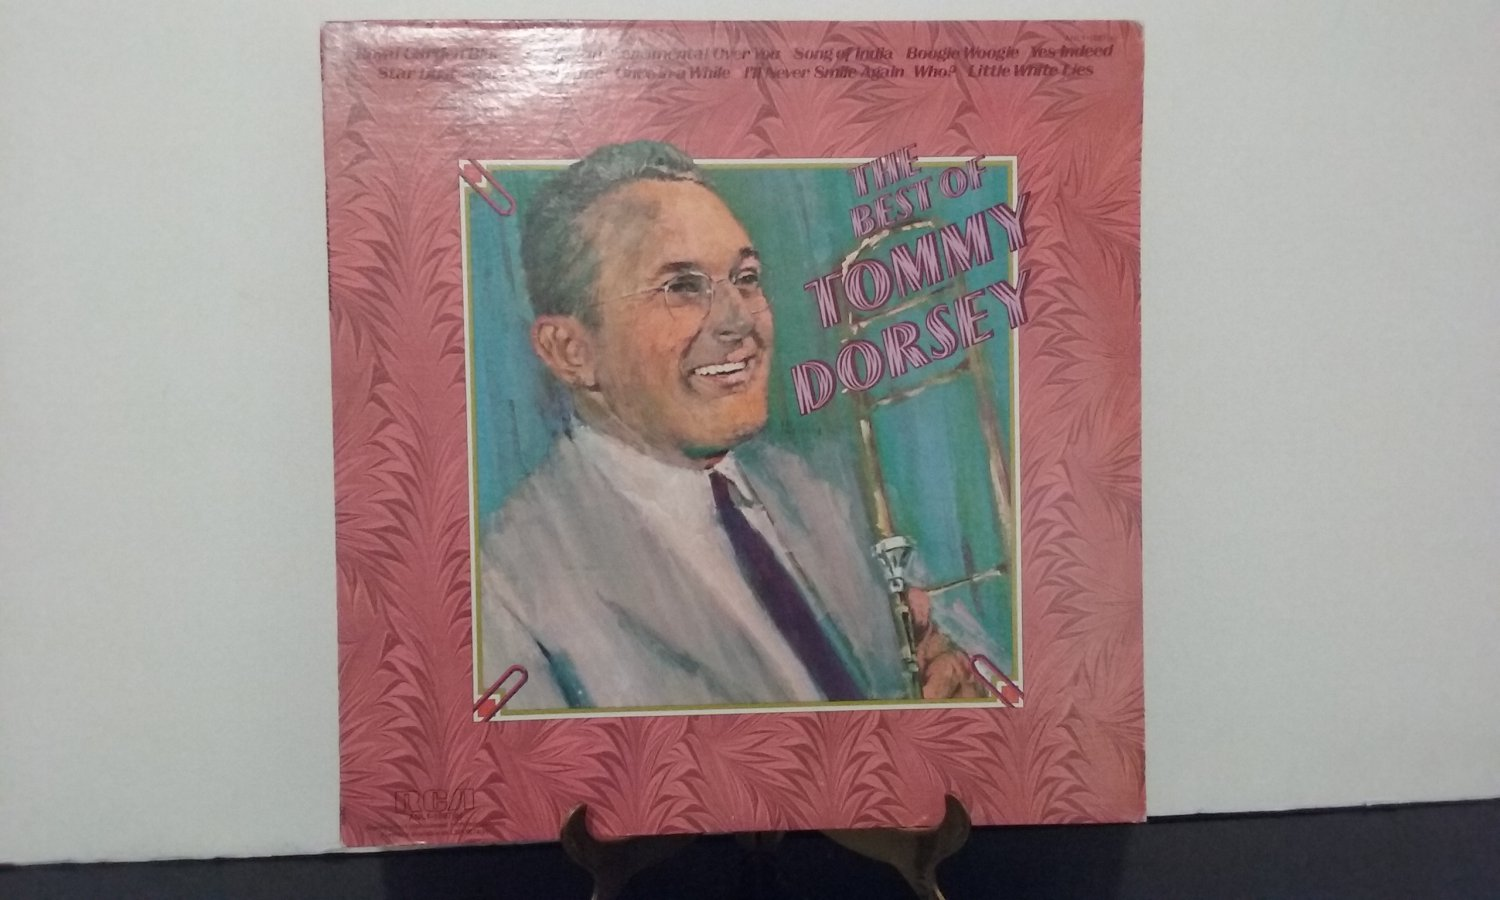 Frank Sinatra Amp Tommy Dorsey The Best Of Tommy Dorsey